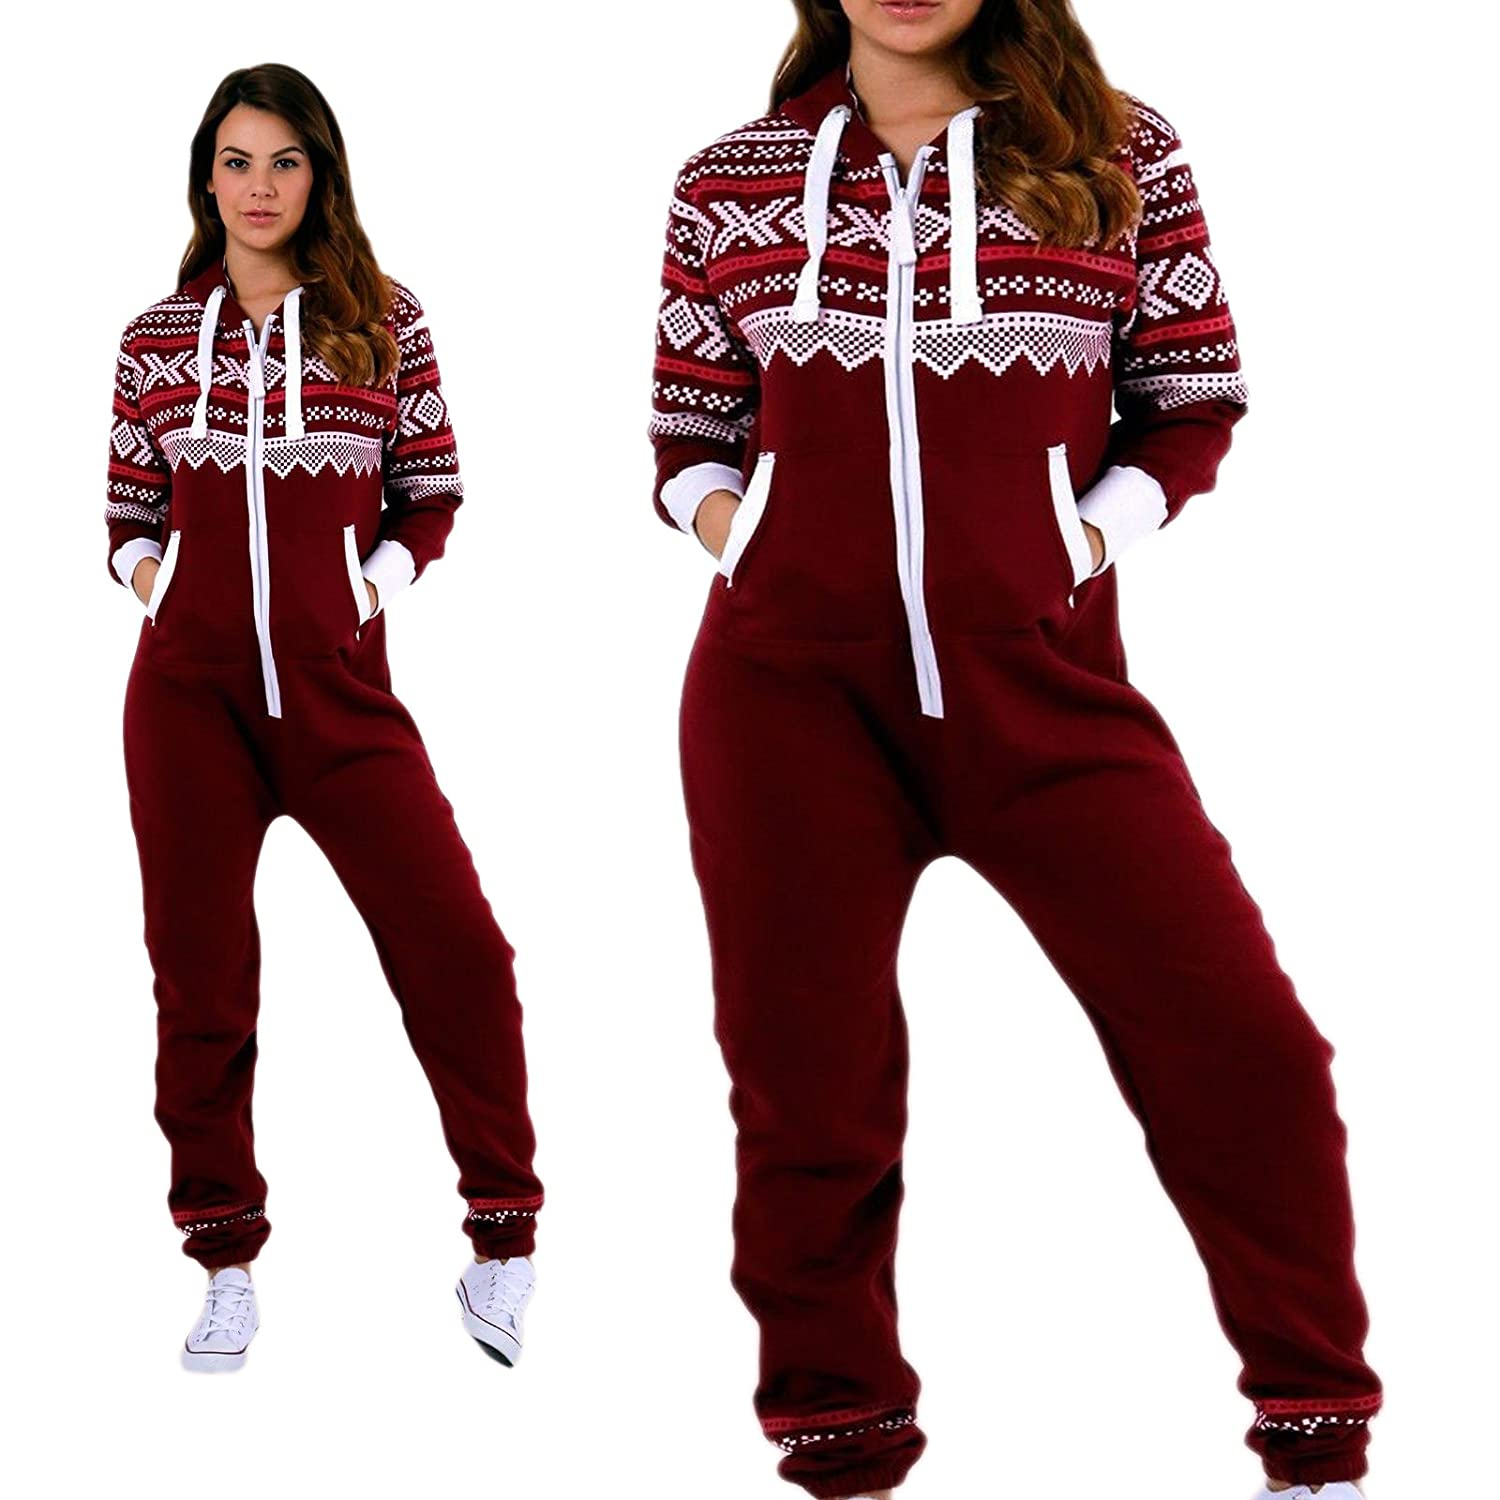 PARSA FASHIONS New Womens Ladies Aztec Print Hooded Zip Up Onesie Jumpsuit Plus Sizes S-XXXXL Sizes UK 8-22